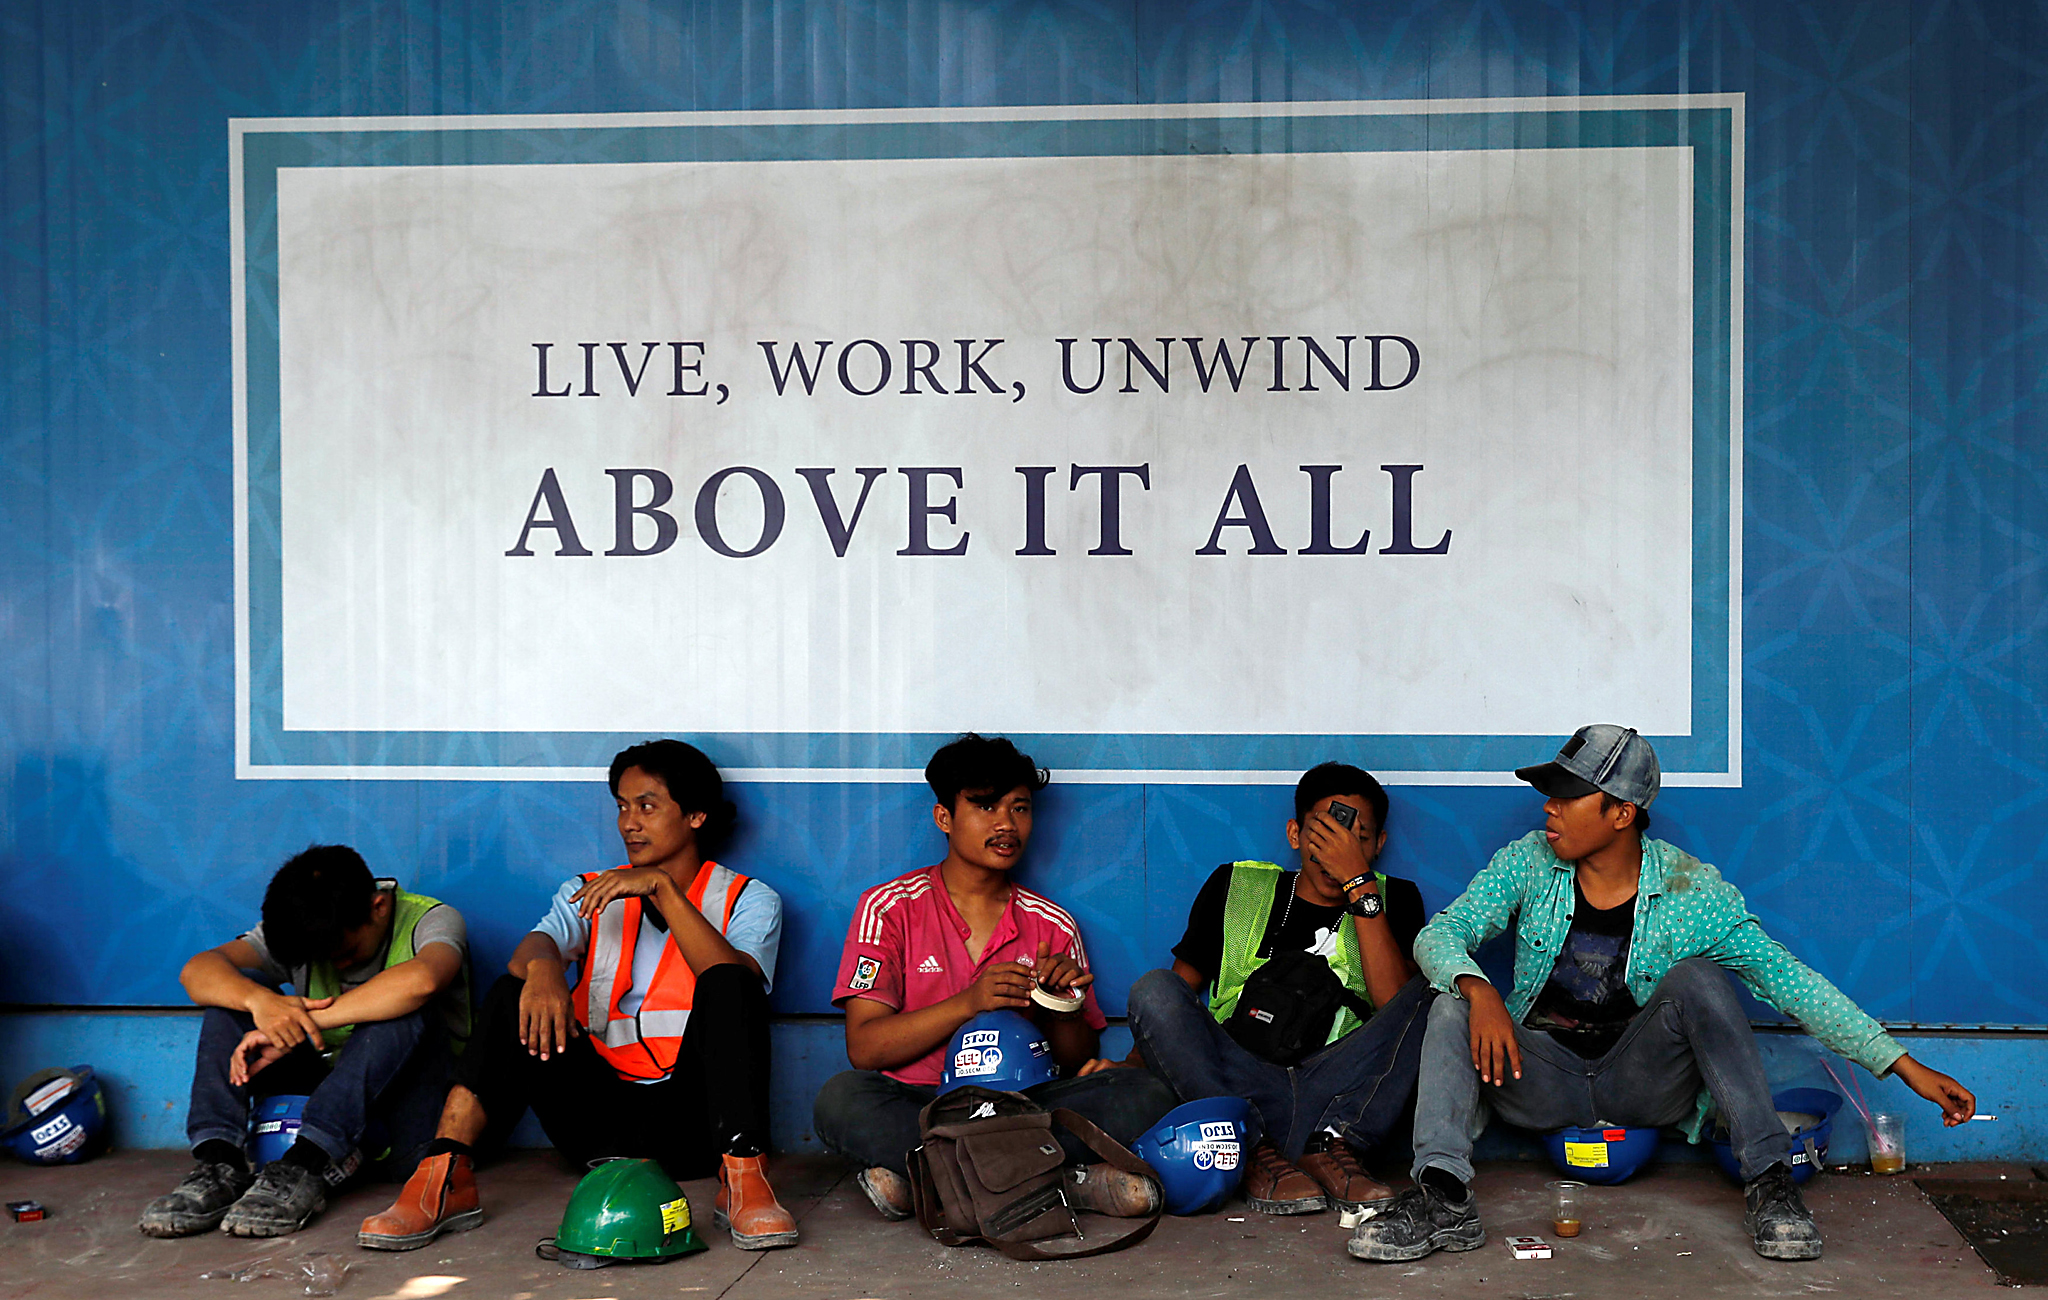 Workers sit as they take a break near a banner of a new apartment in Jakarta, Indonesia, May 18, 2016. REUTERS/Beawiharta